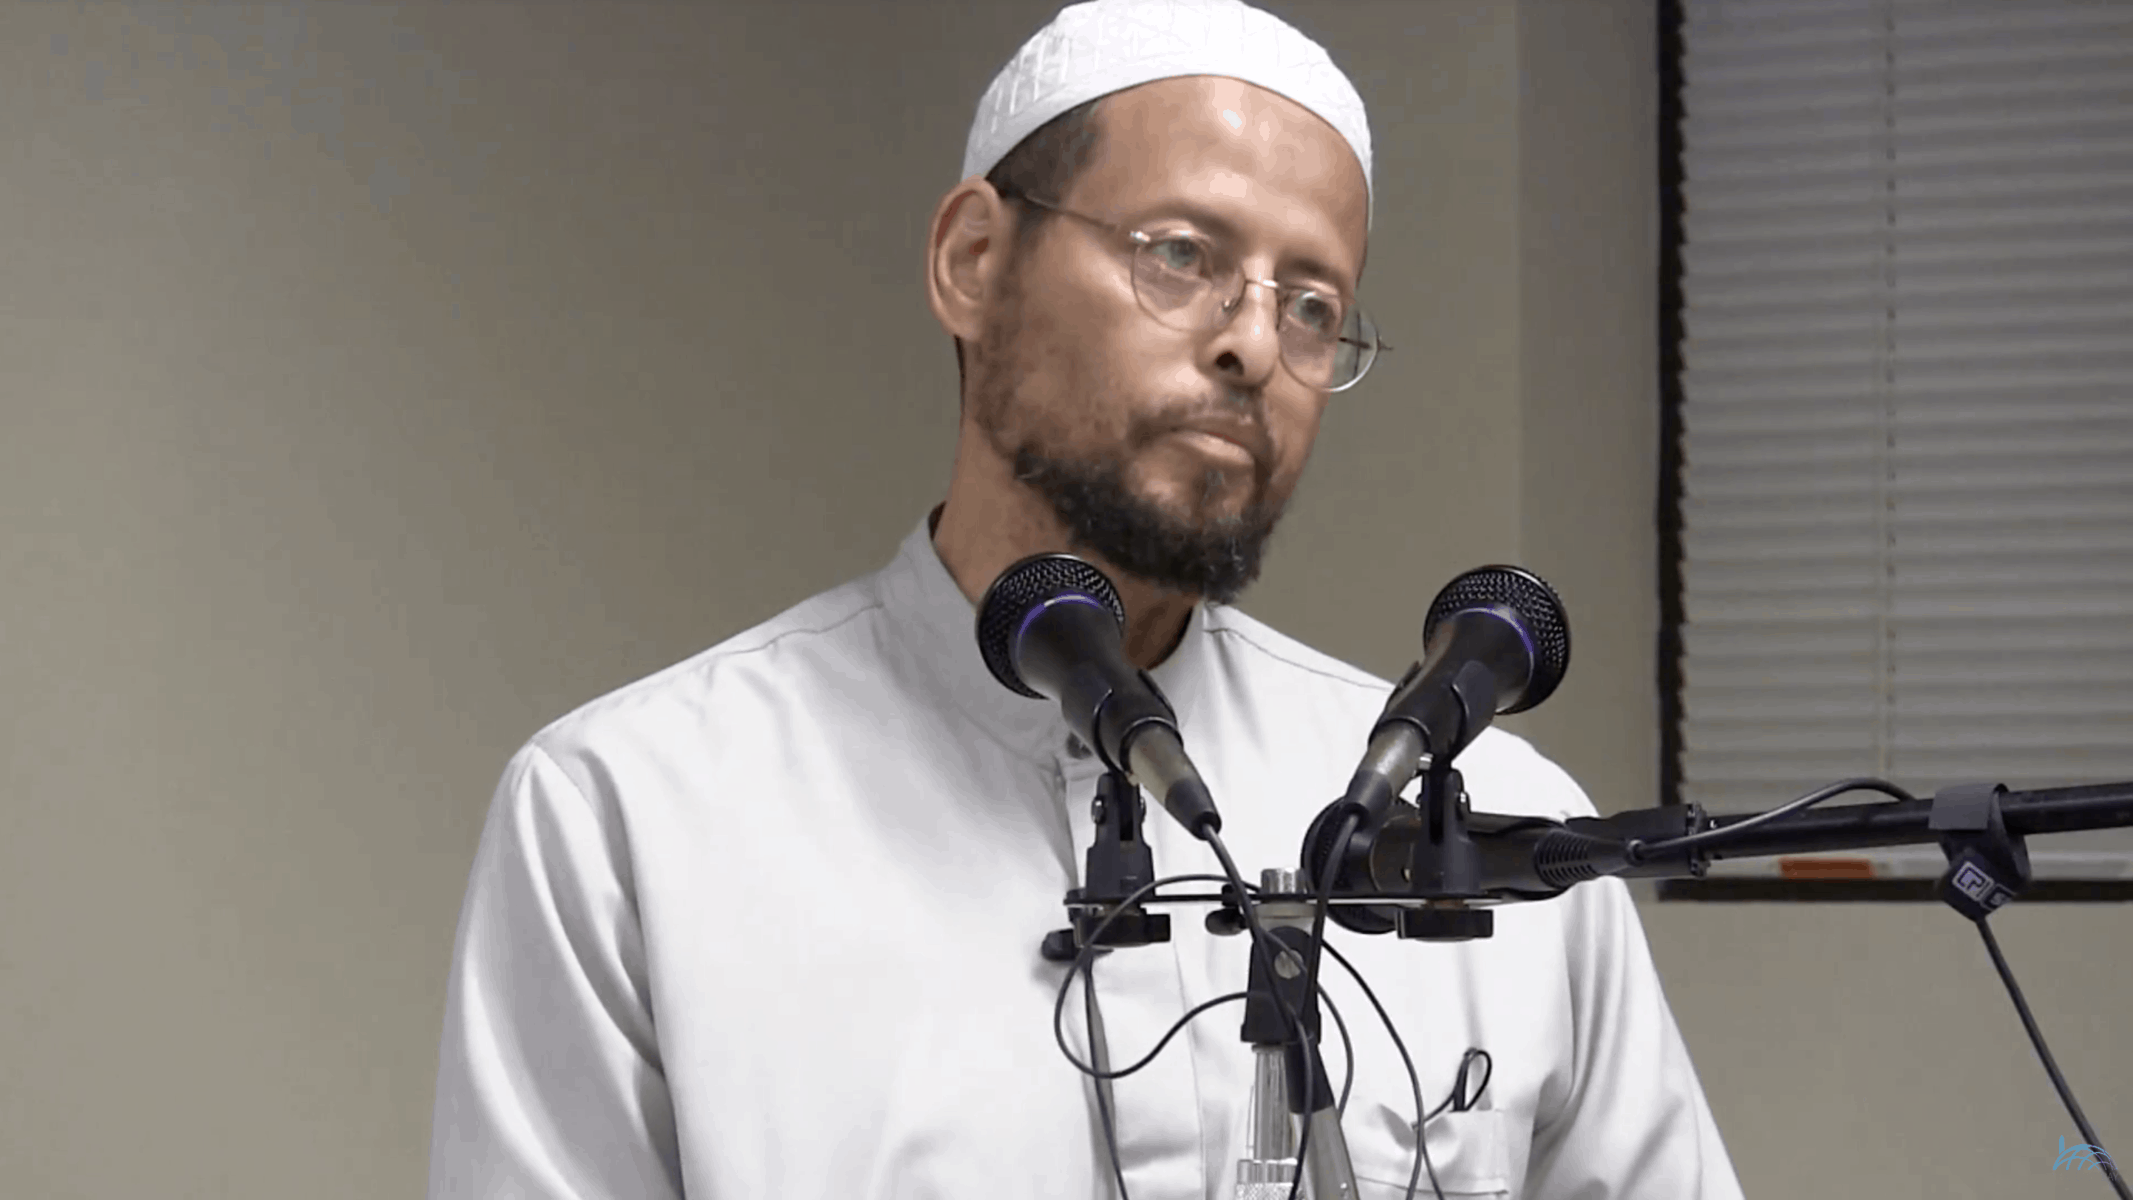 Zaid Shakir – Securing Your Forgiveness This Ramadan